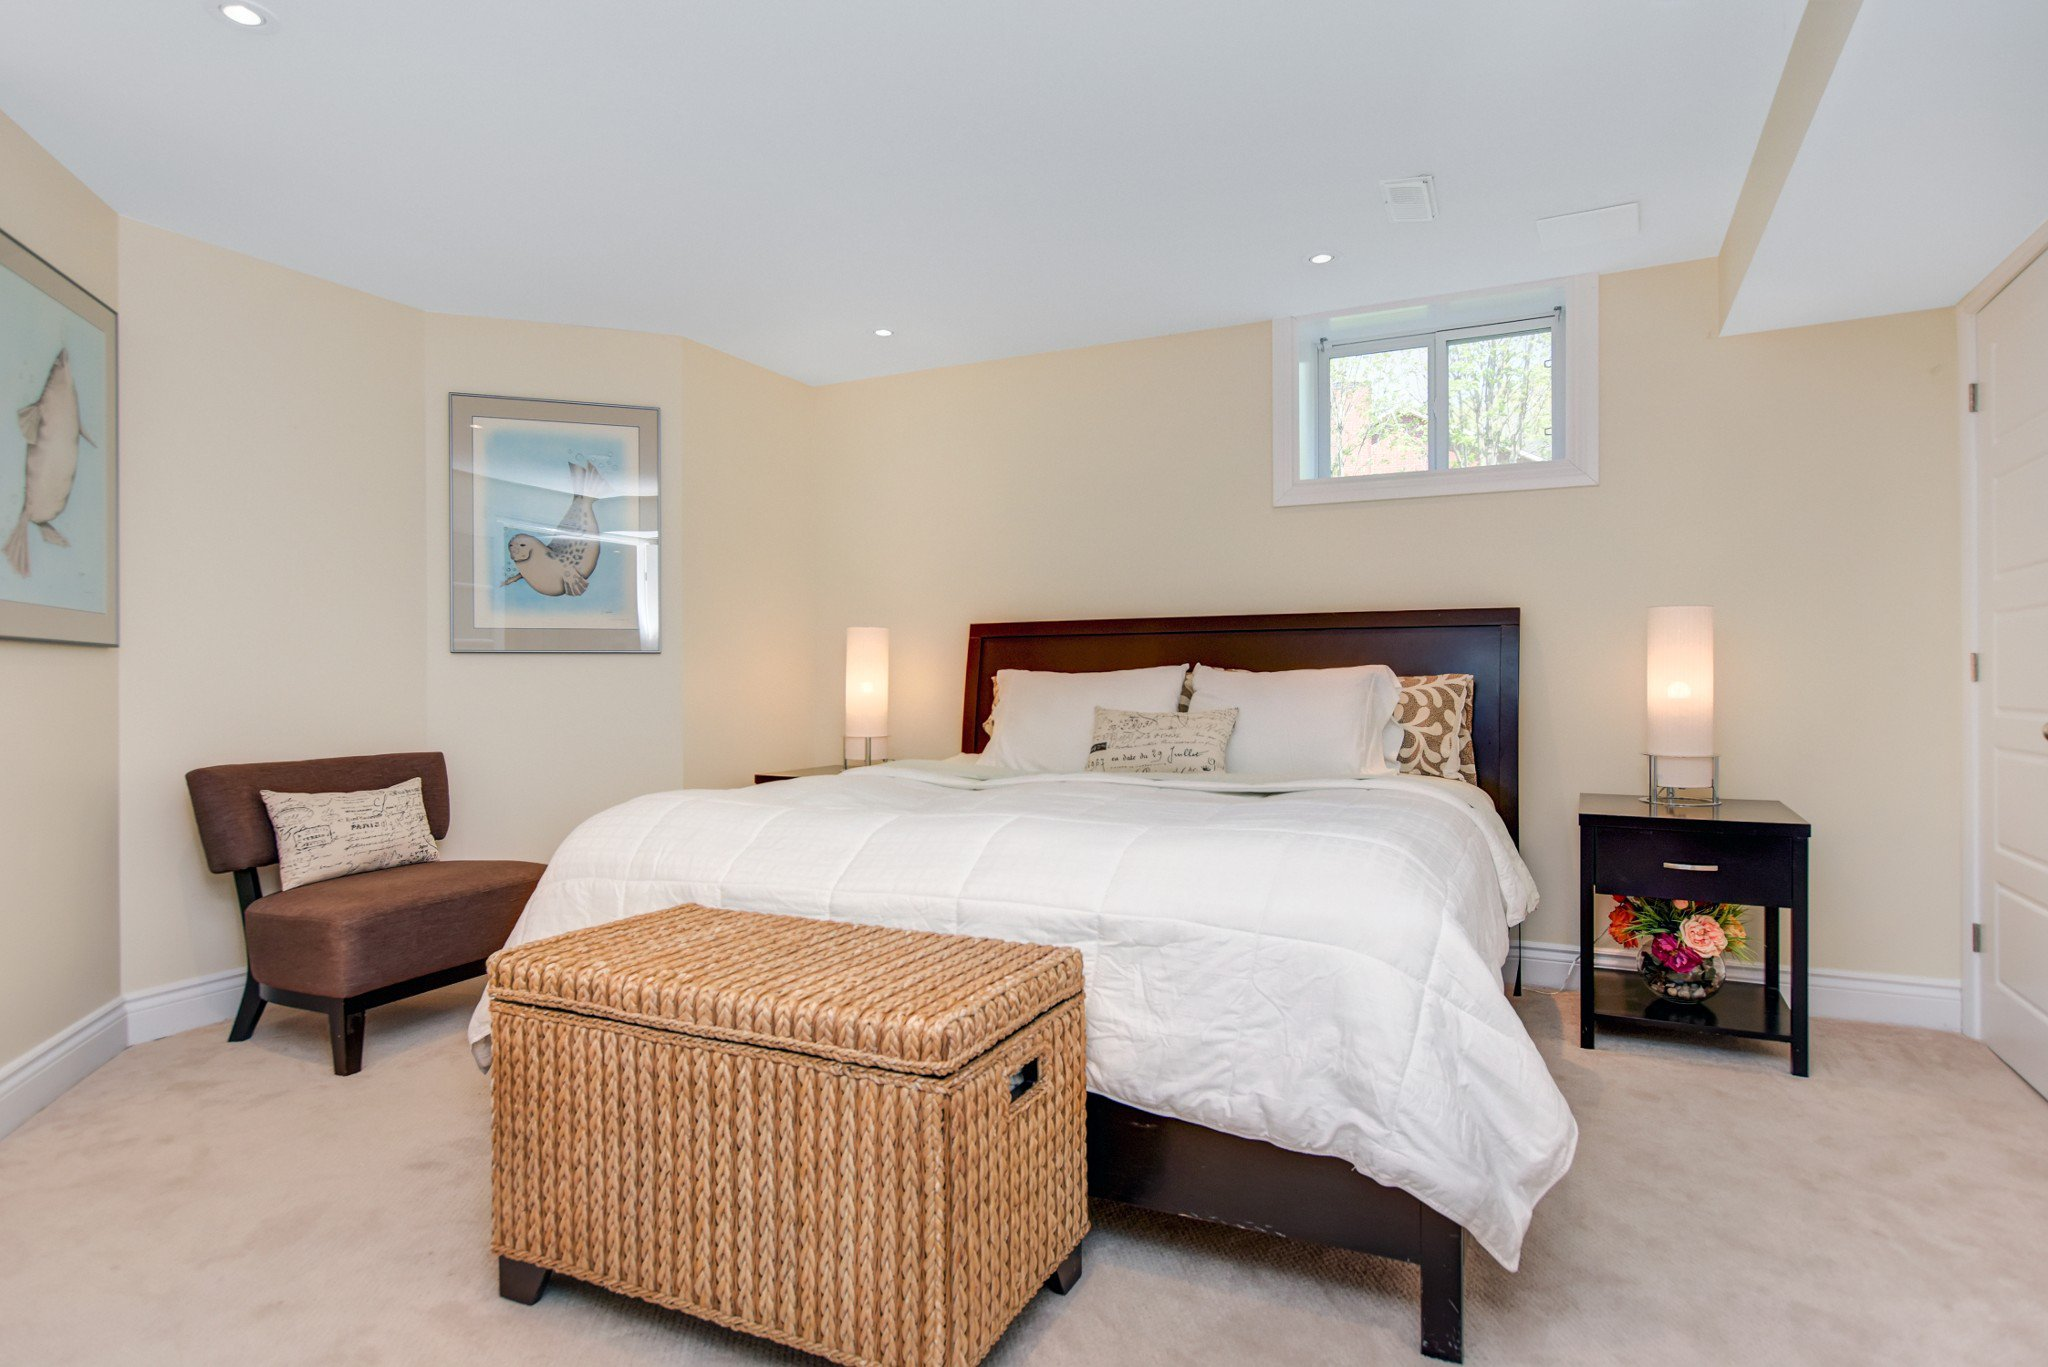 Photo 54: Photos: 1490 REINDEER WAY.: Greely House for sale (Ottawa)  : MLS®# 1109530